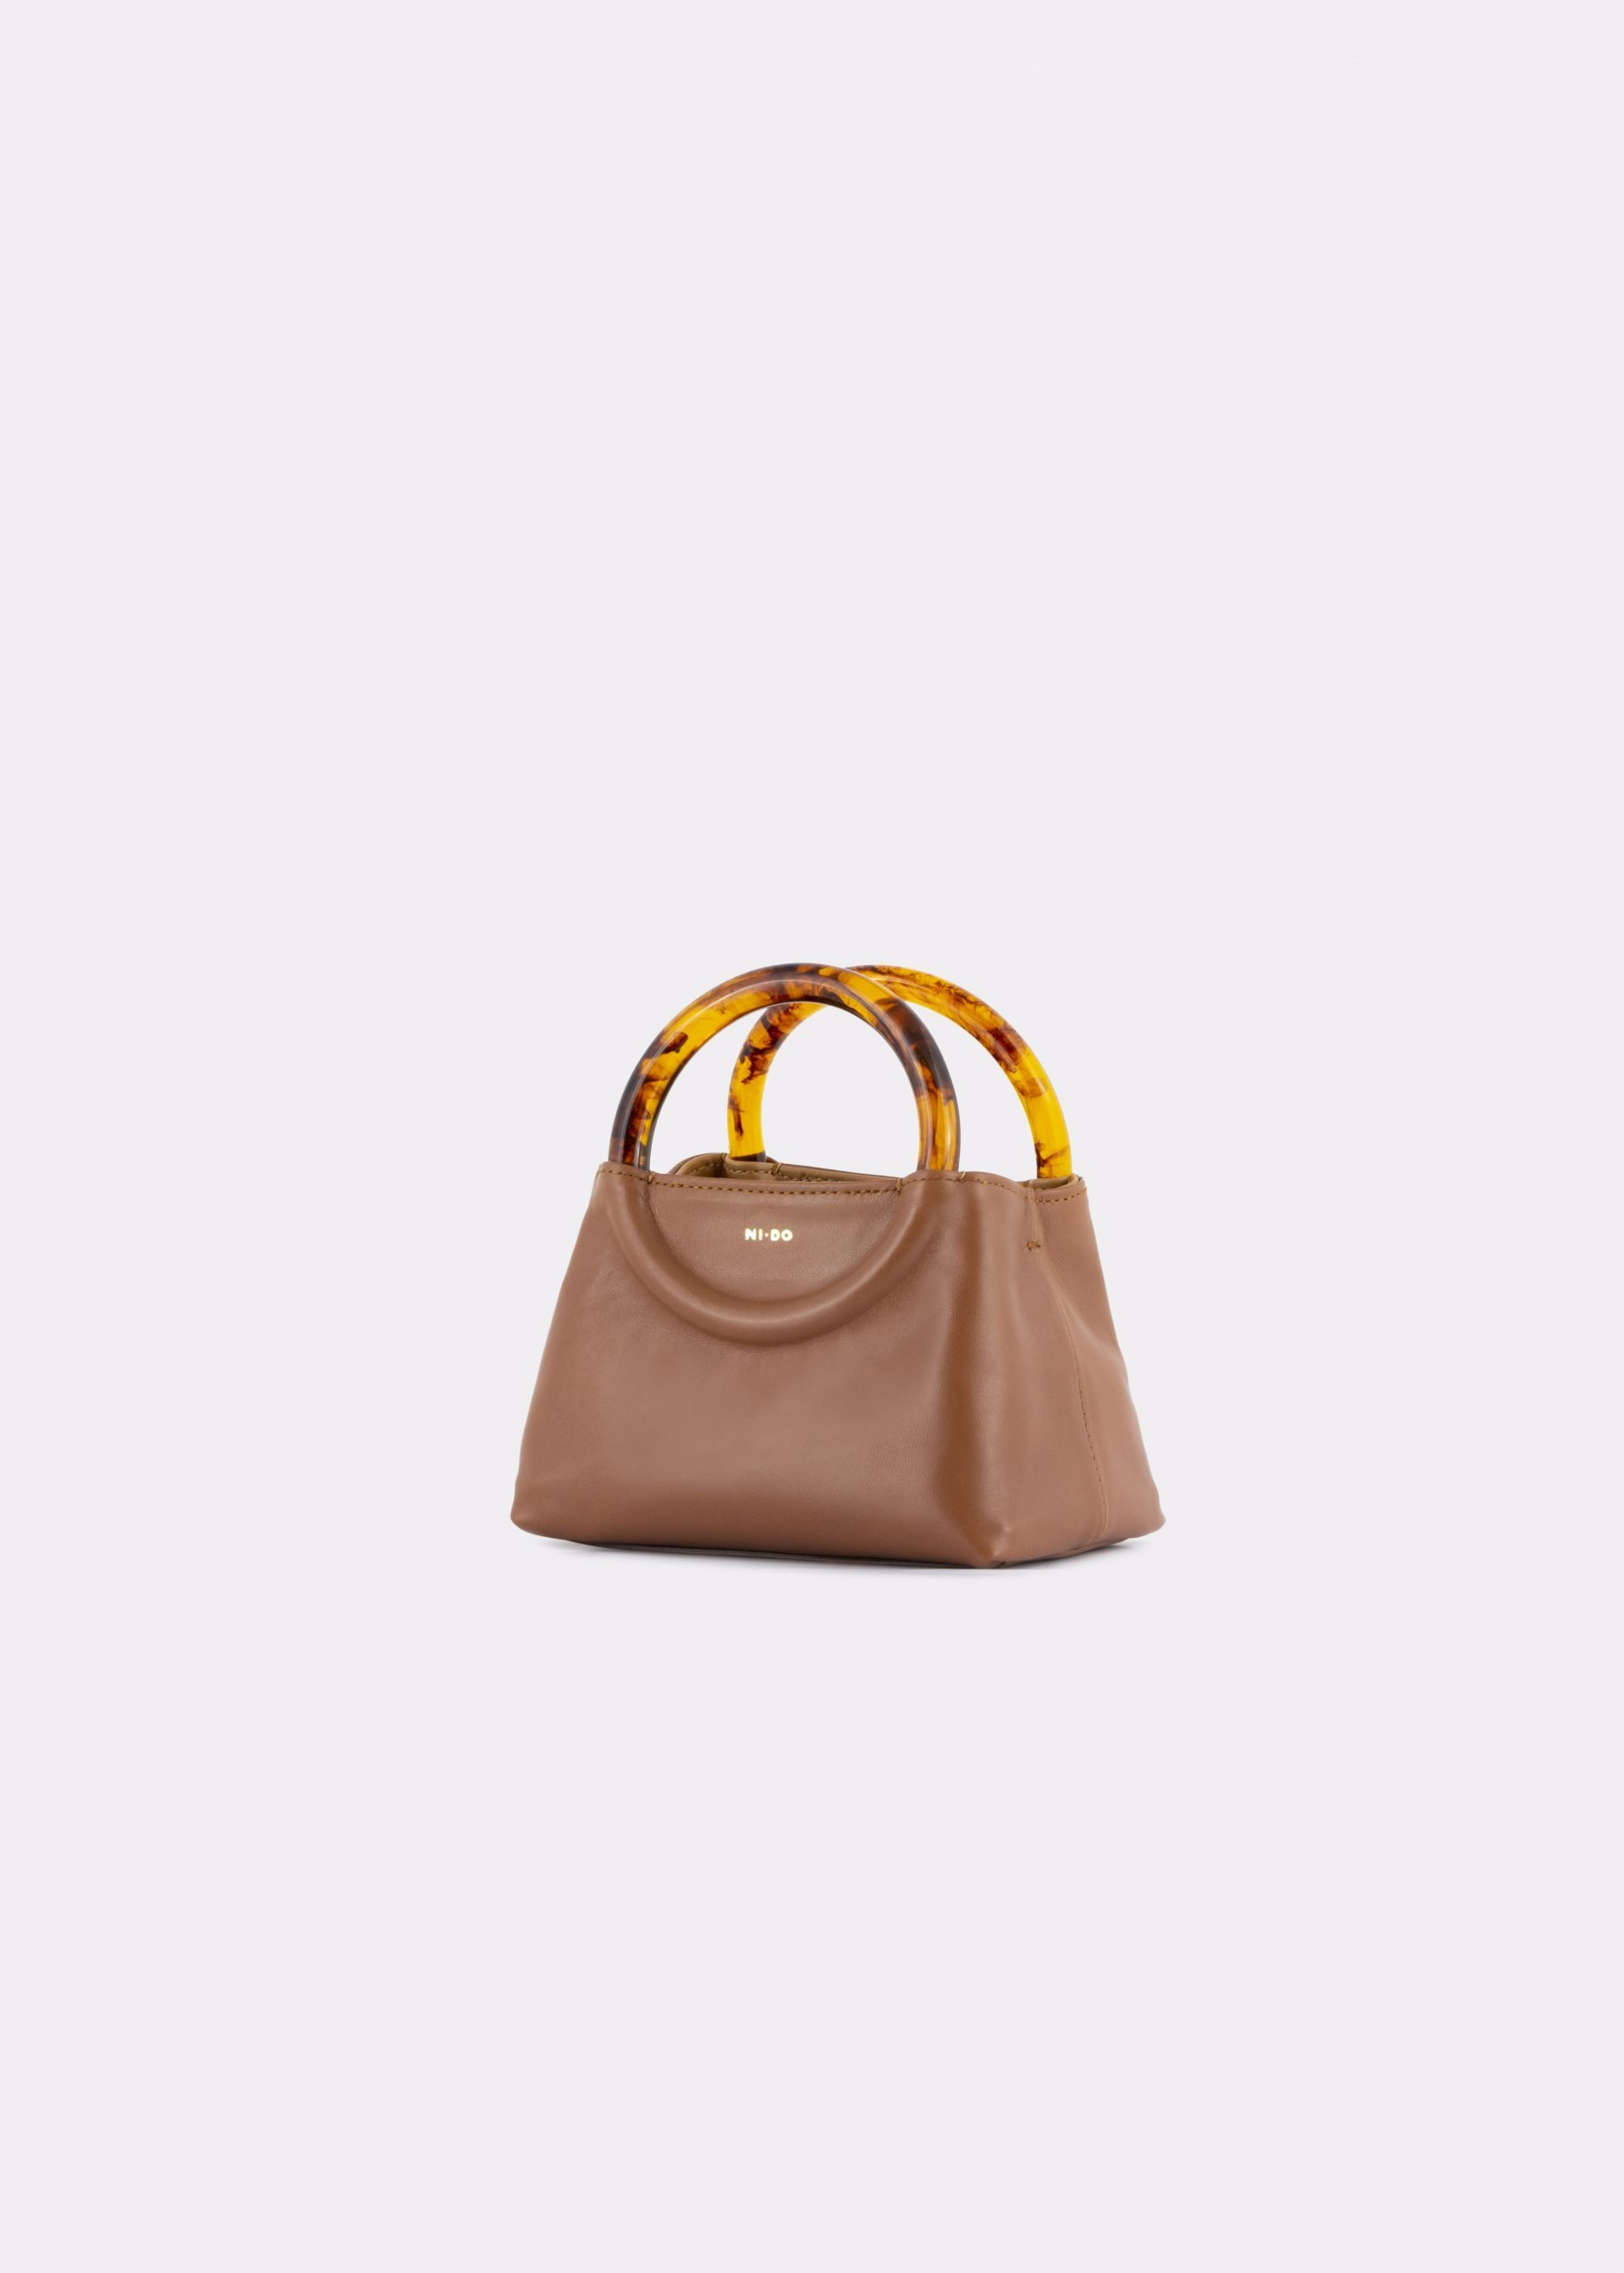 NIDO Bolla Micro bag biscuit leather Amber_side view